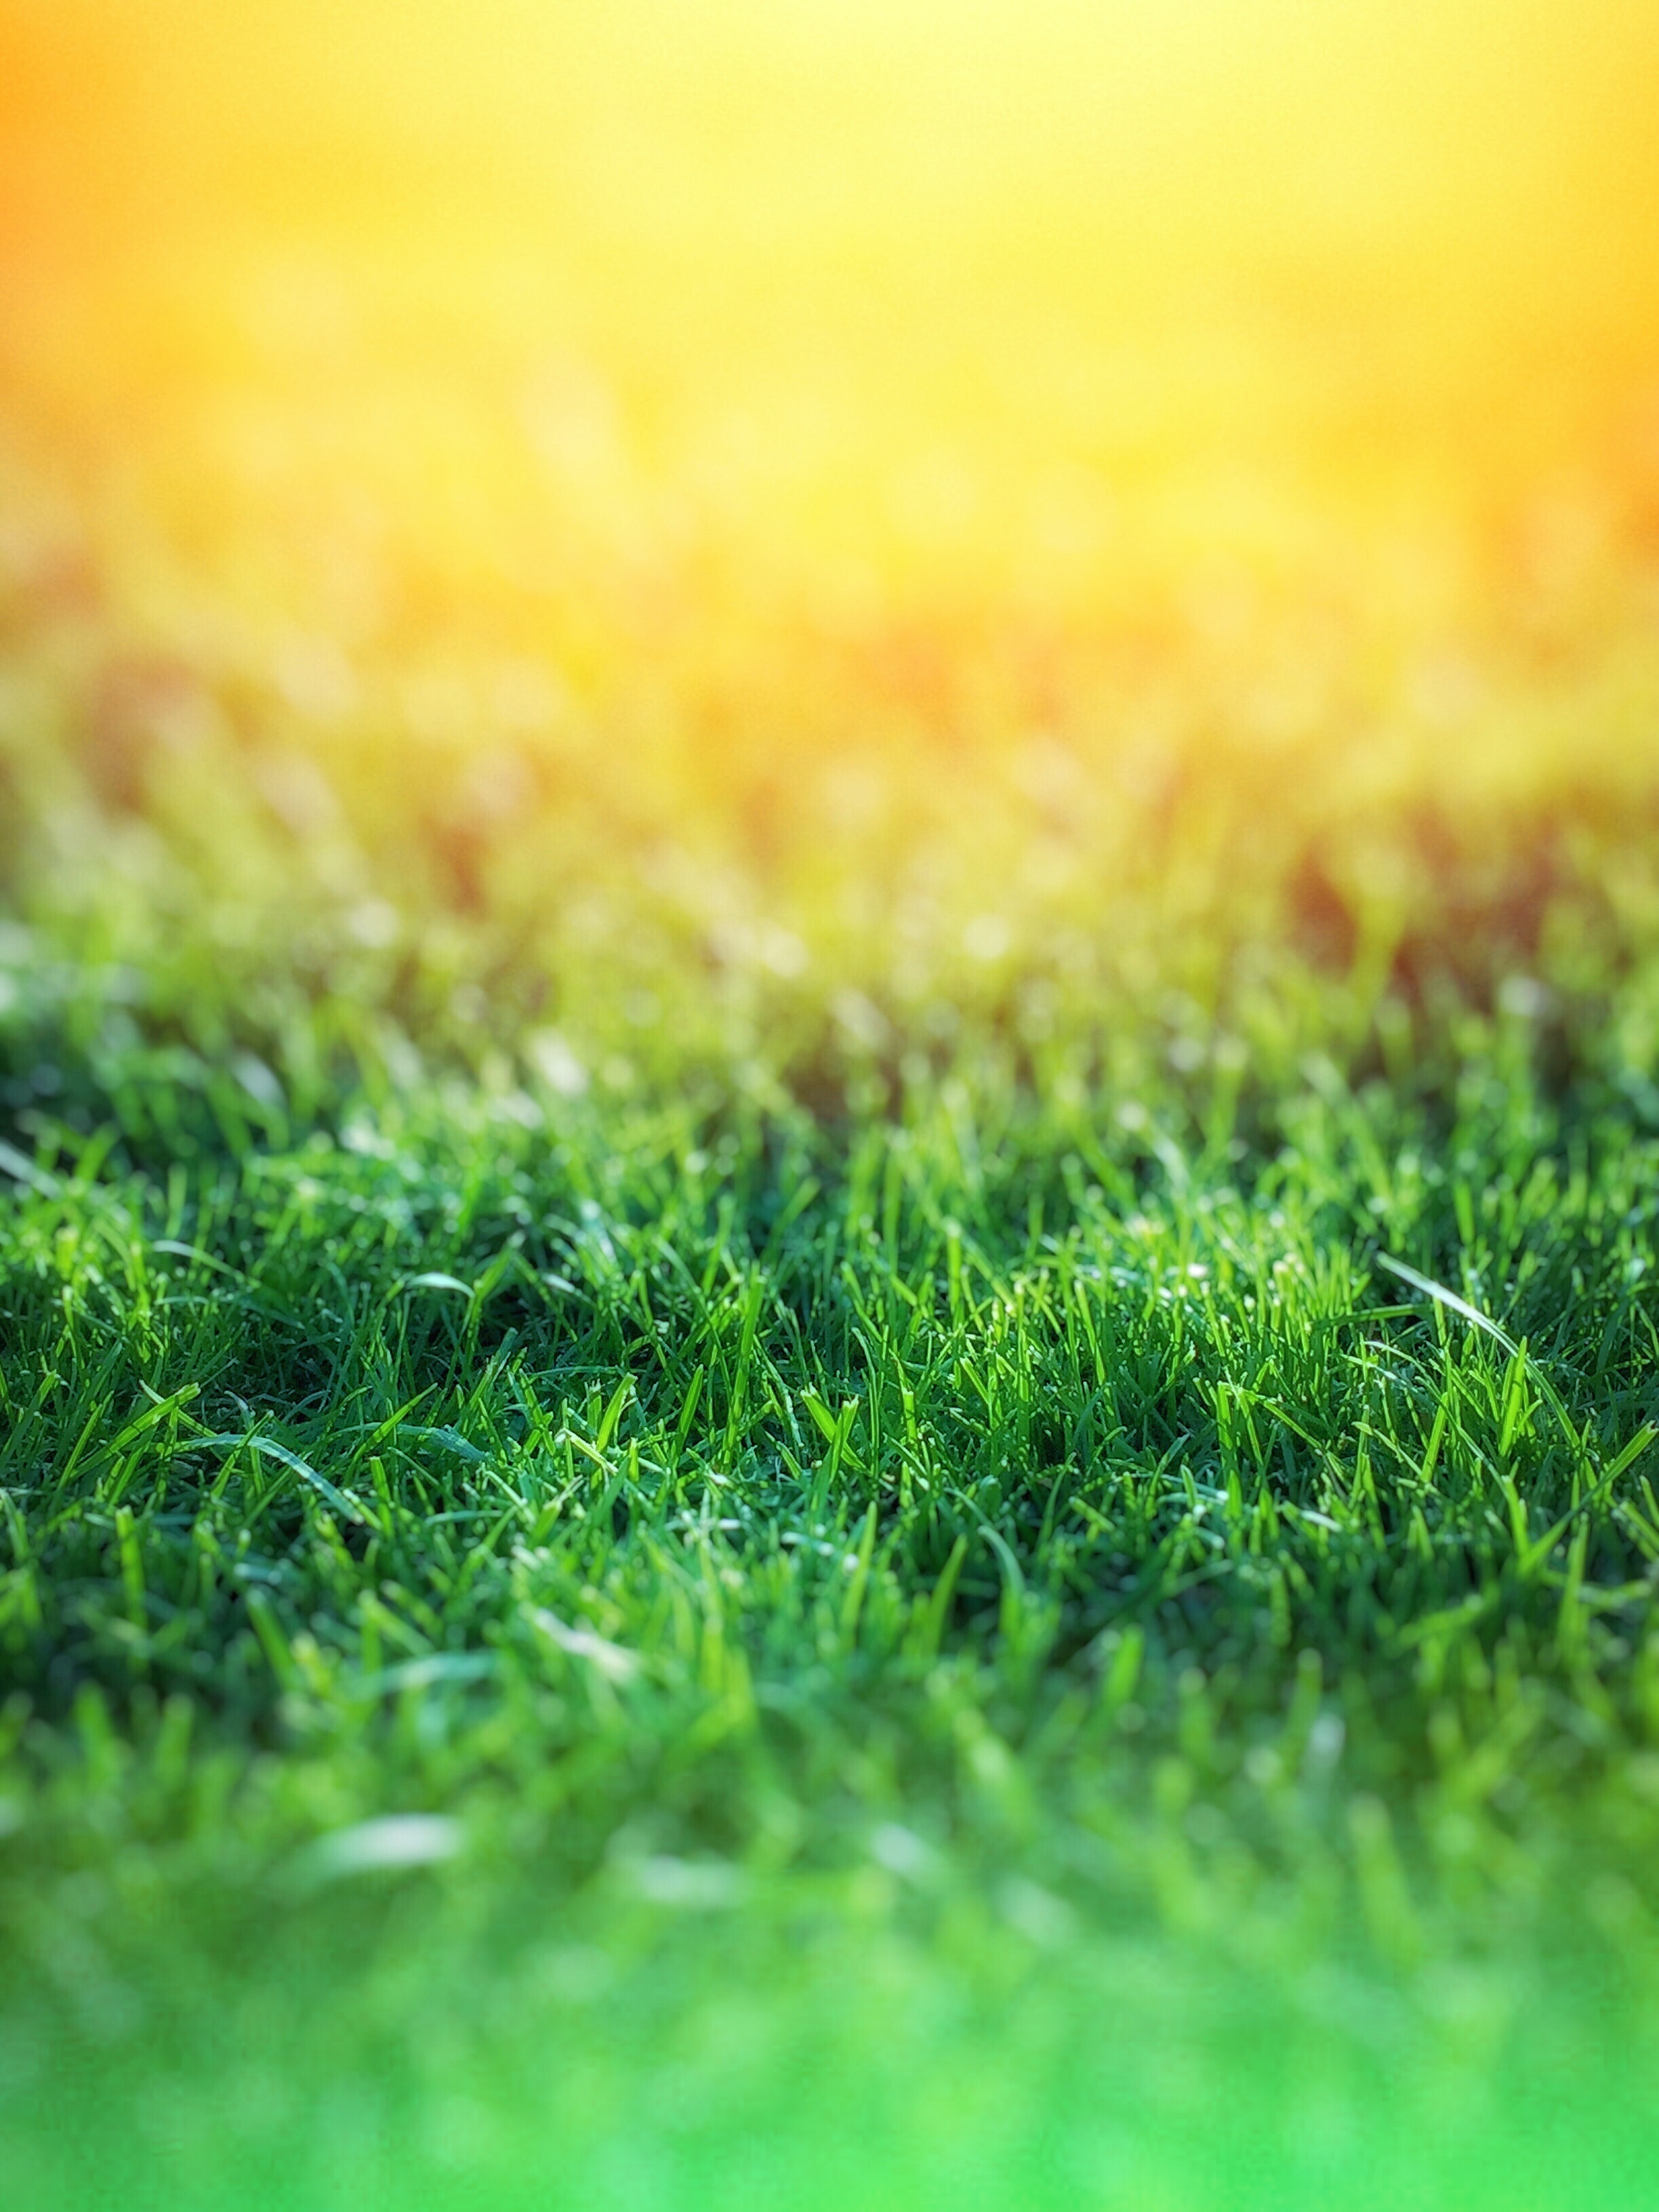 Green Grass Over Yellow Background Free Stock Photo